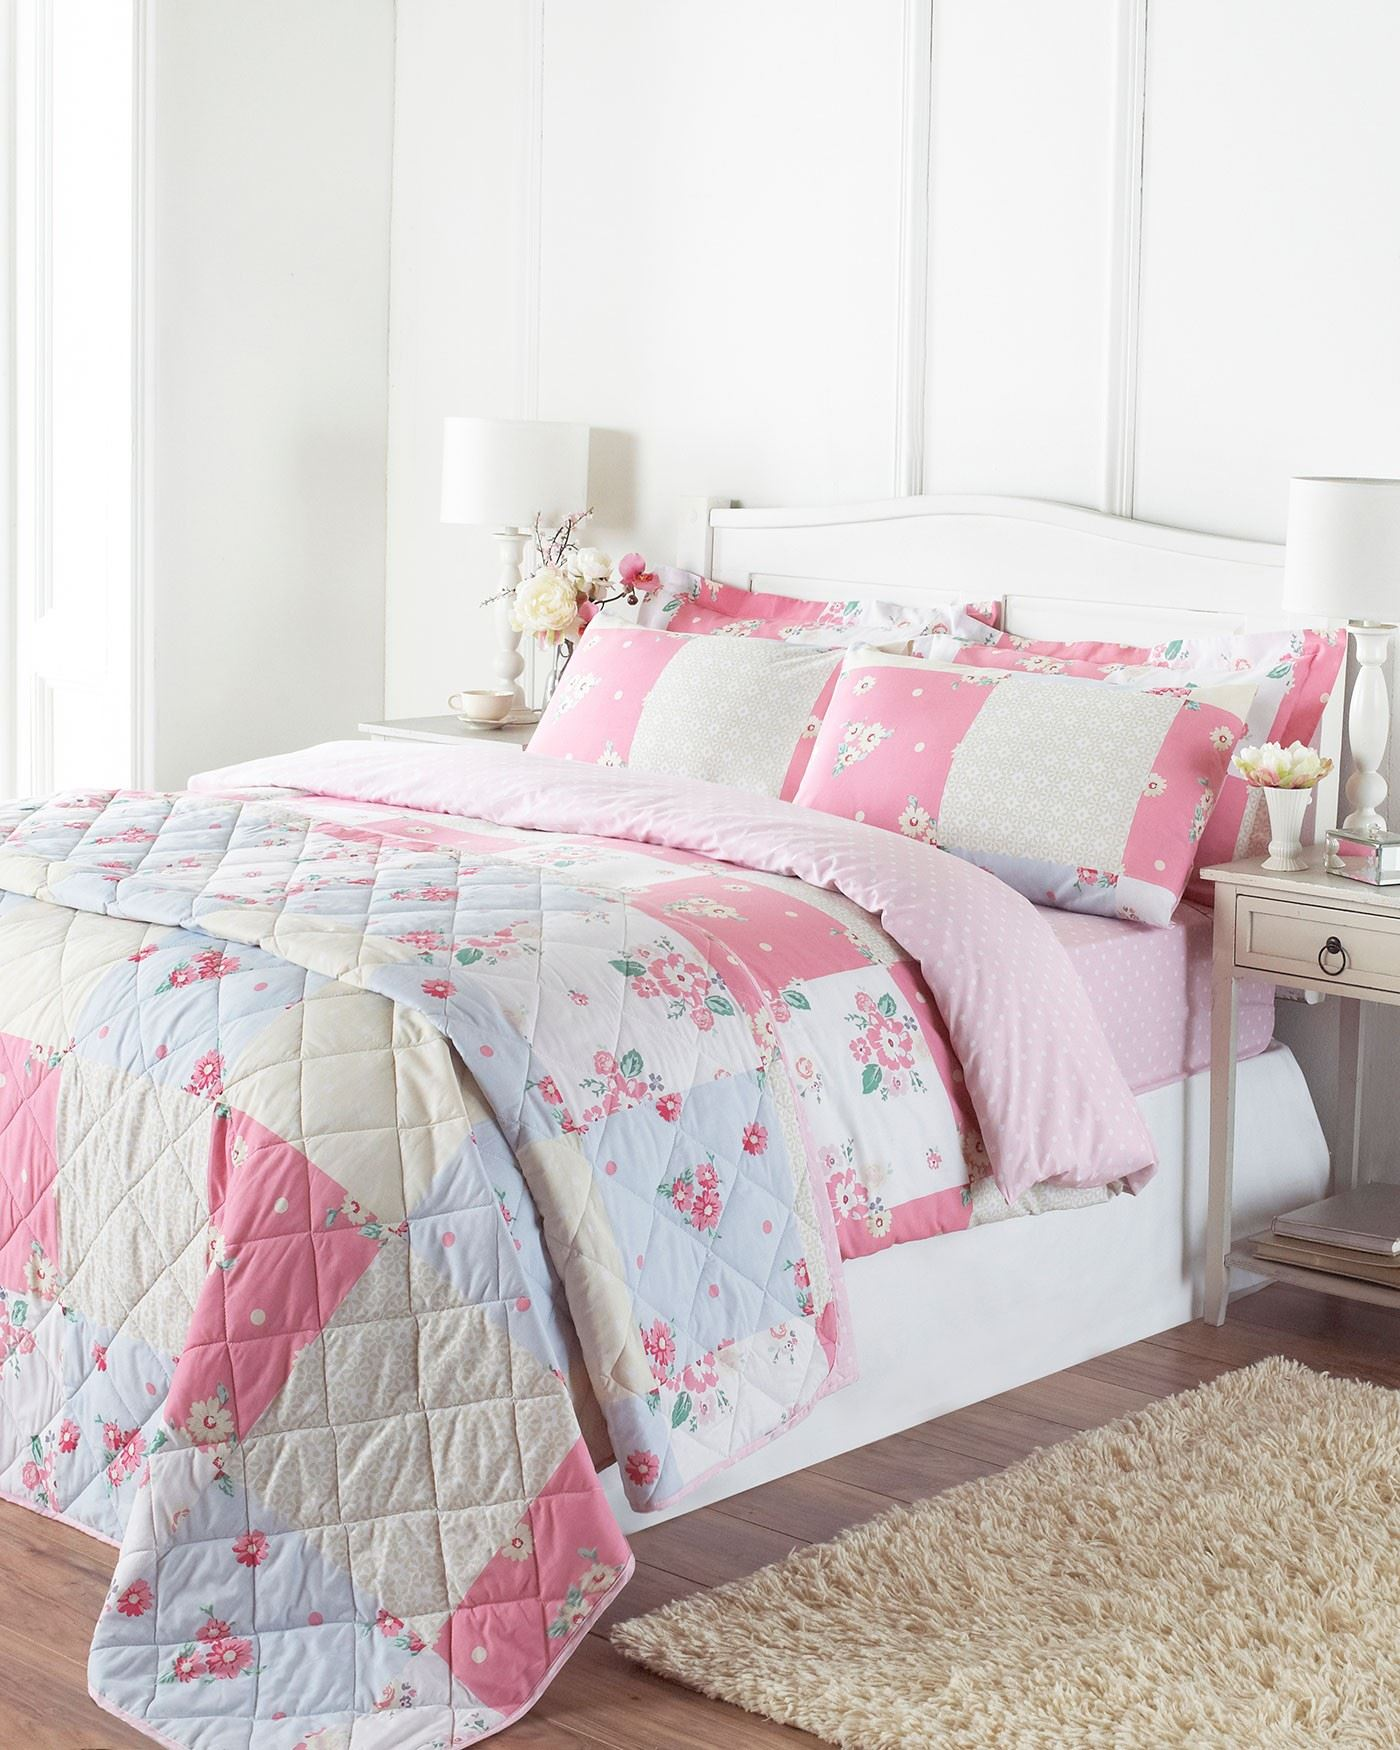 Overstock uses cookies to ensure you get the best experience on our site. If you continue on our site, you consent to the use of such cookies. Learn more. OK Pure Melody Lightweight Classic Paisley Printed 3-piece Quilt Set by Southshore Fine Linens. 78 Reviews.